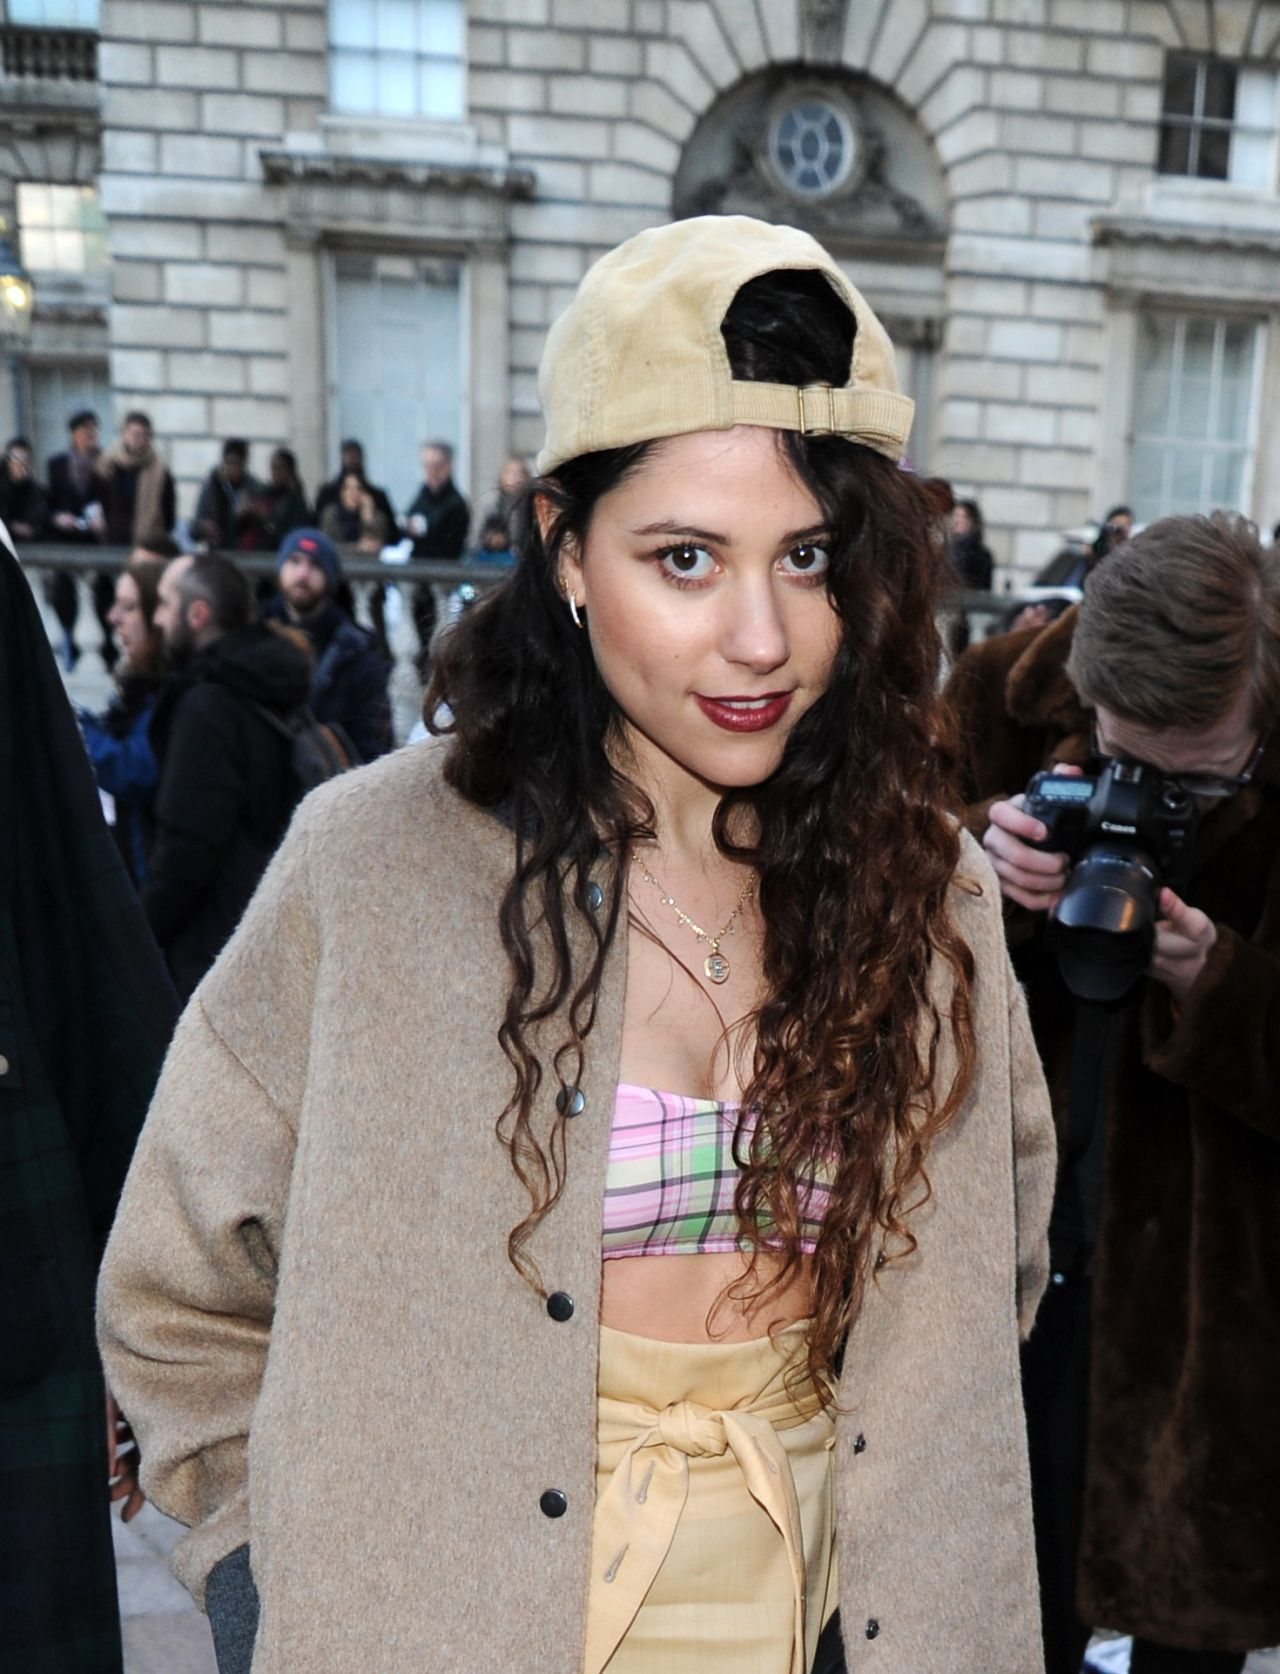 Eliza Doolittle - Vivienne Westwood London Fashion Week Show - February 2014